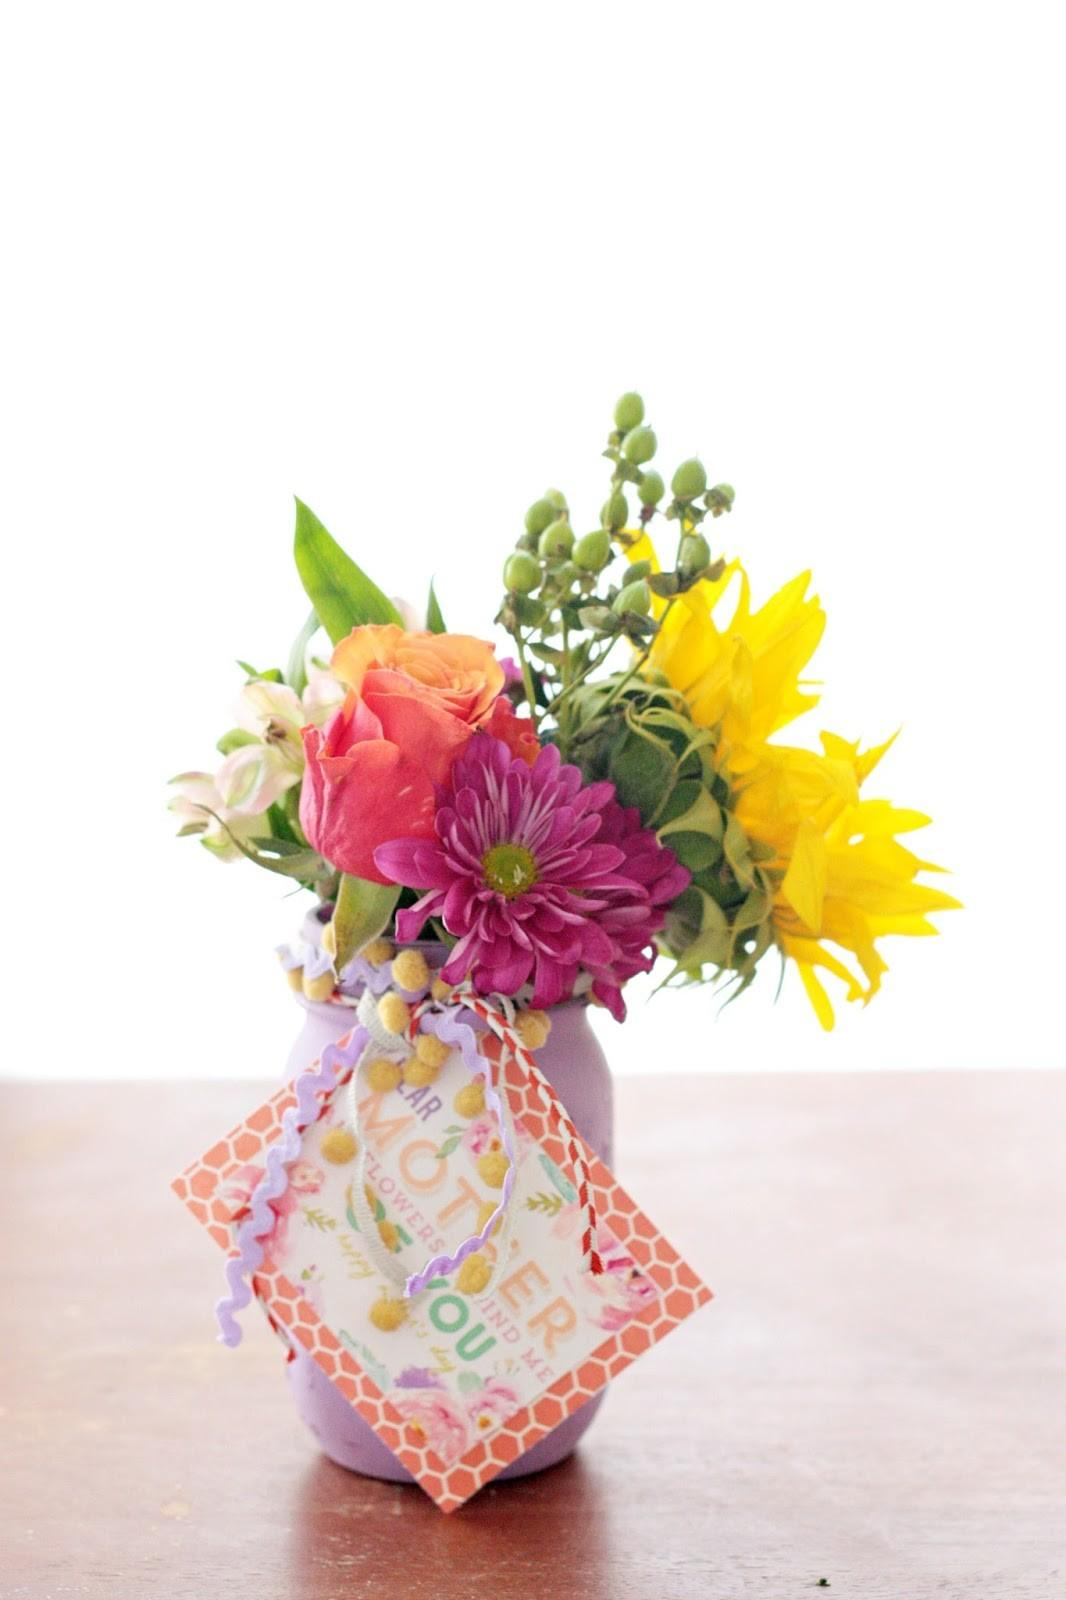 Pretty Life Girls Plg Diy Easy Mother Day Vases